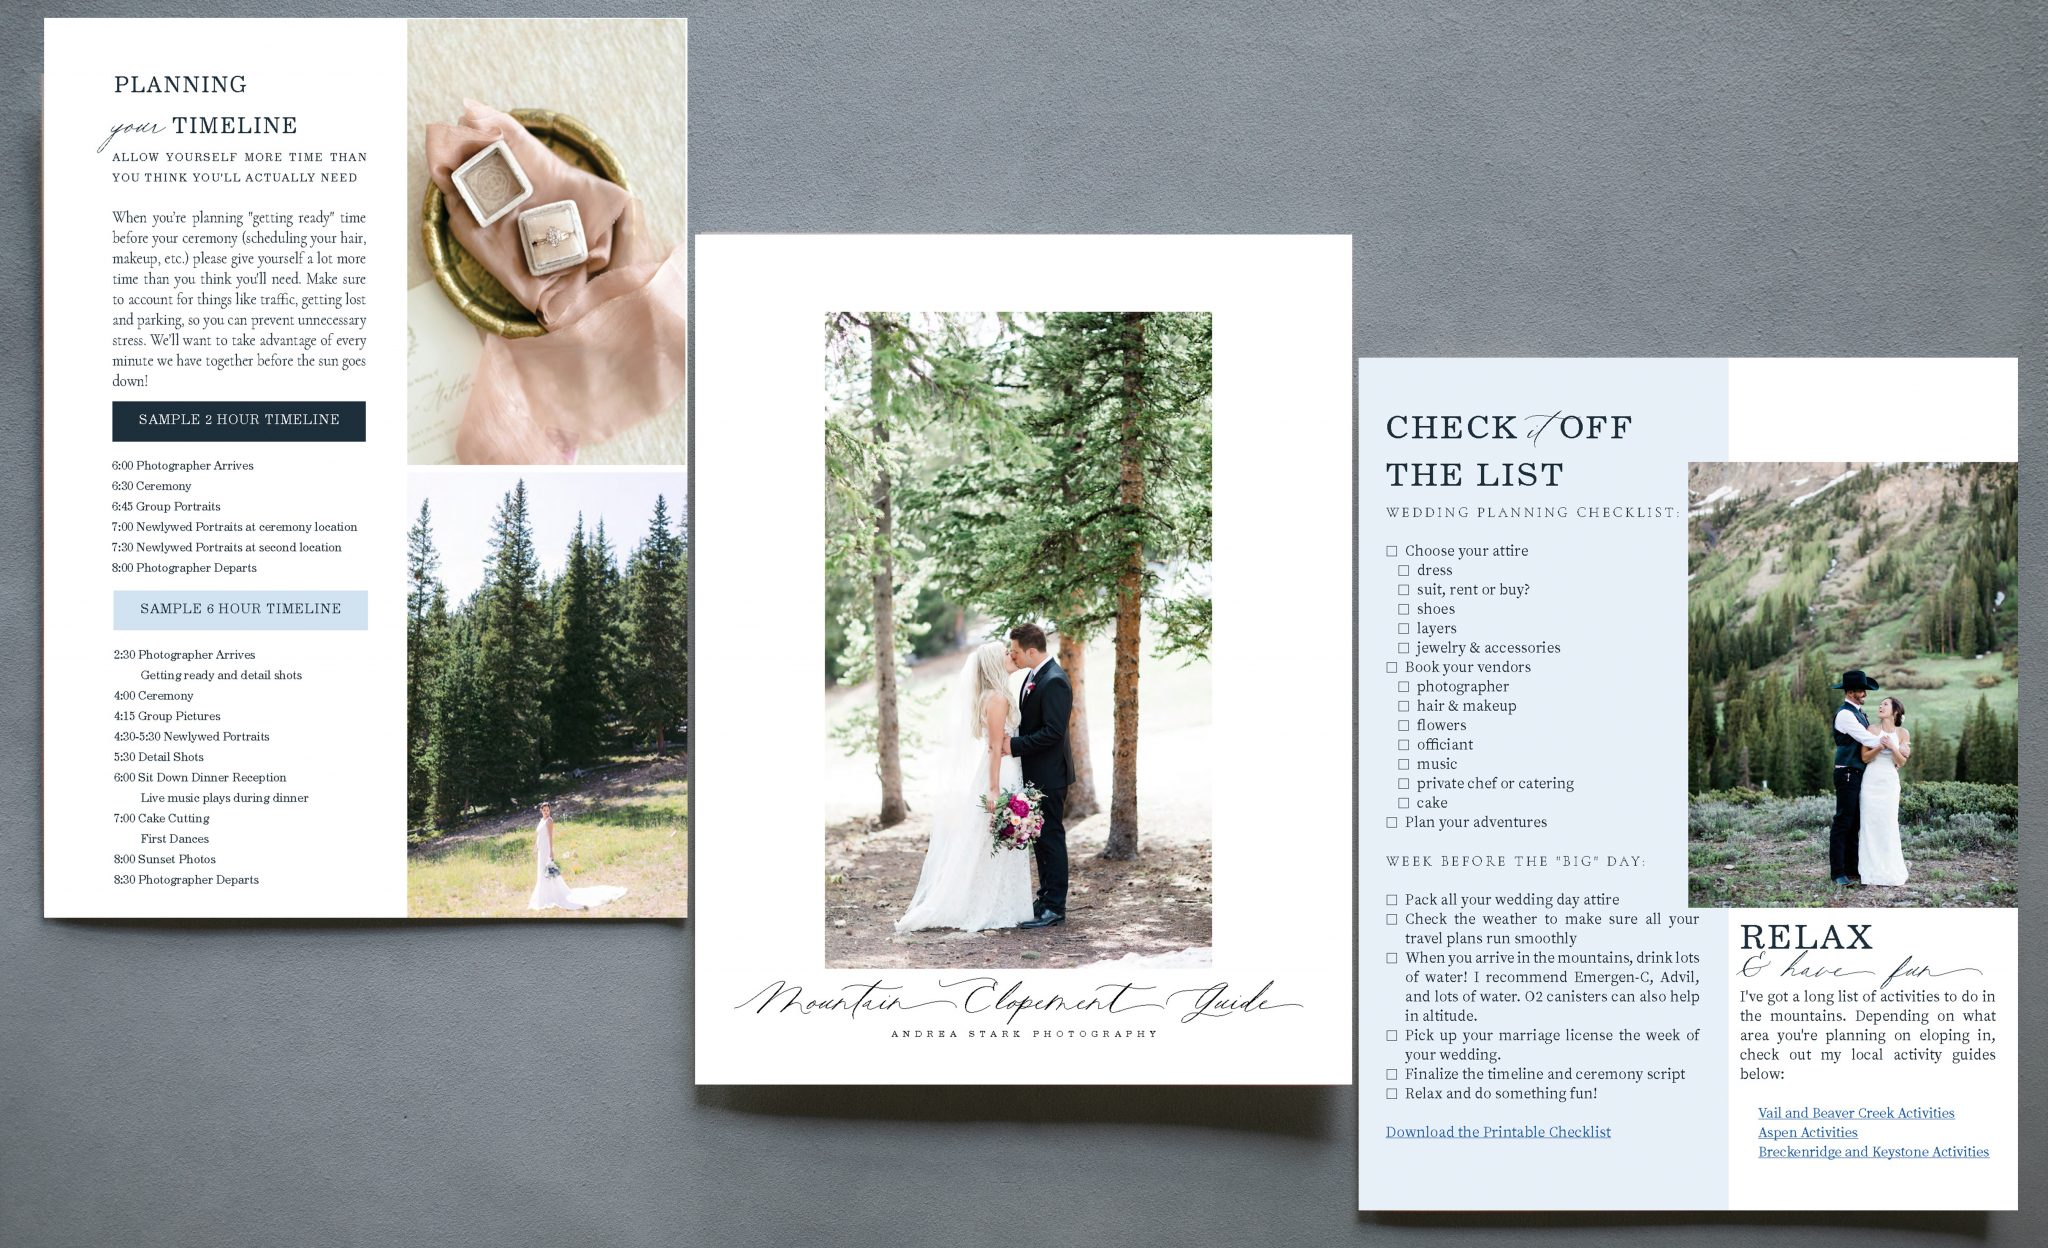 mountain elopement guide pdf image